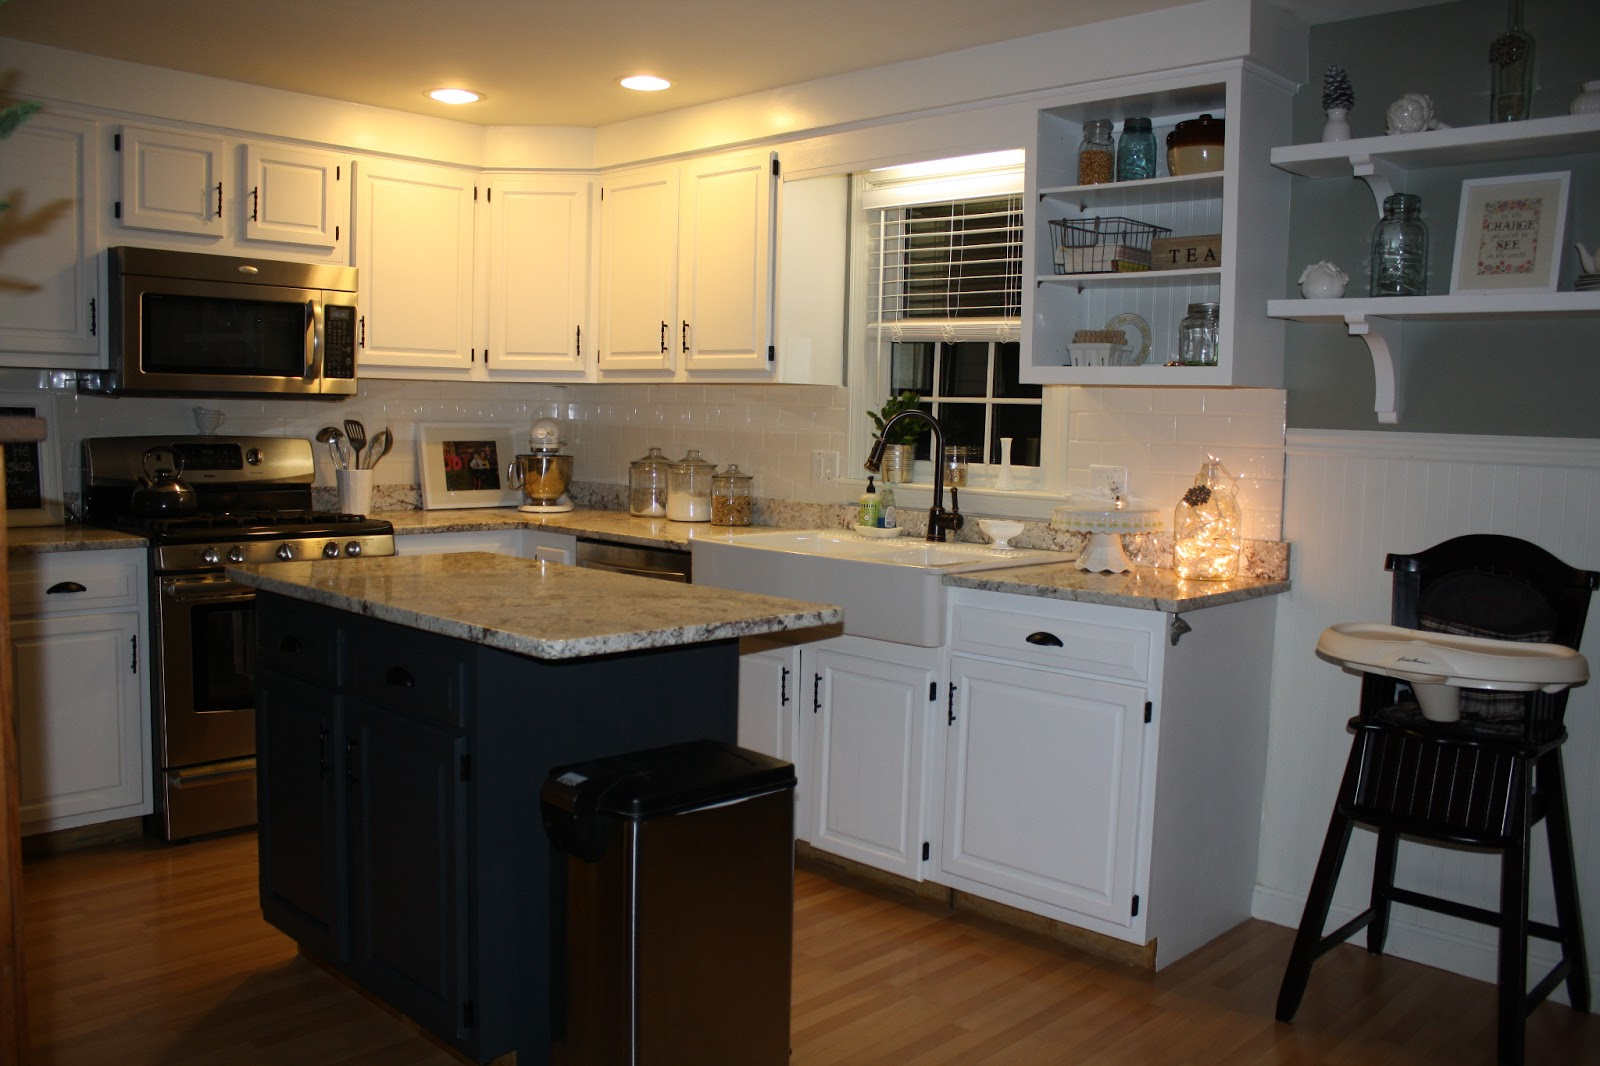 Restored Purpose Timeline And Cost Of Kitchen Renovation